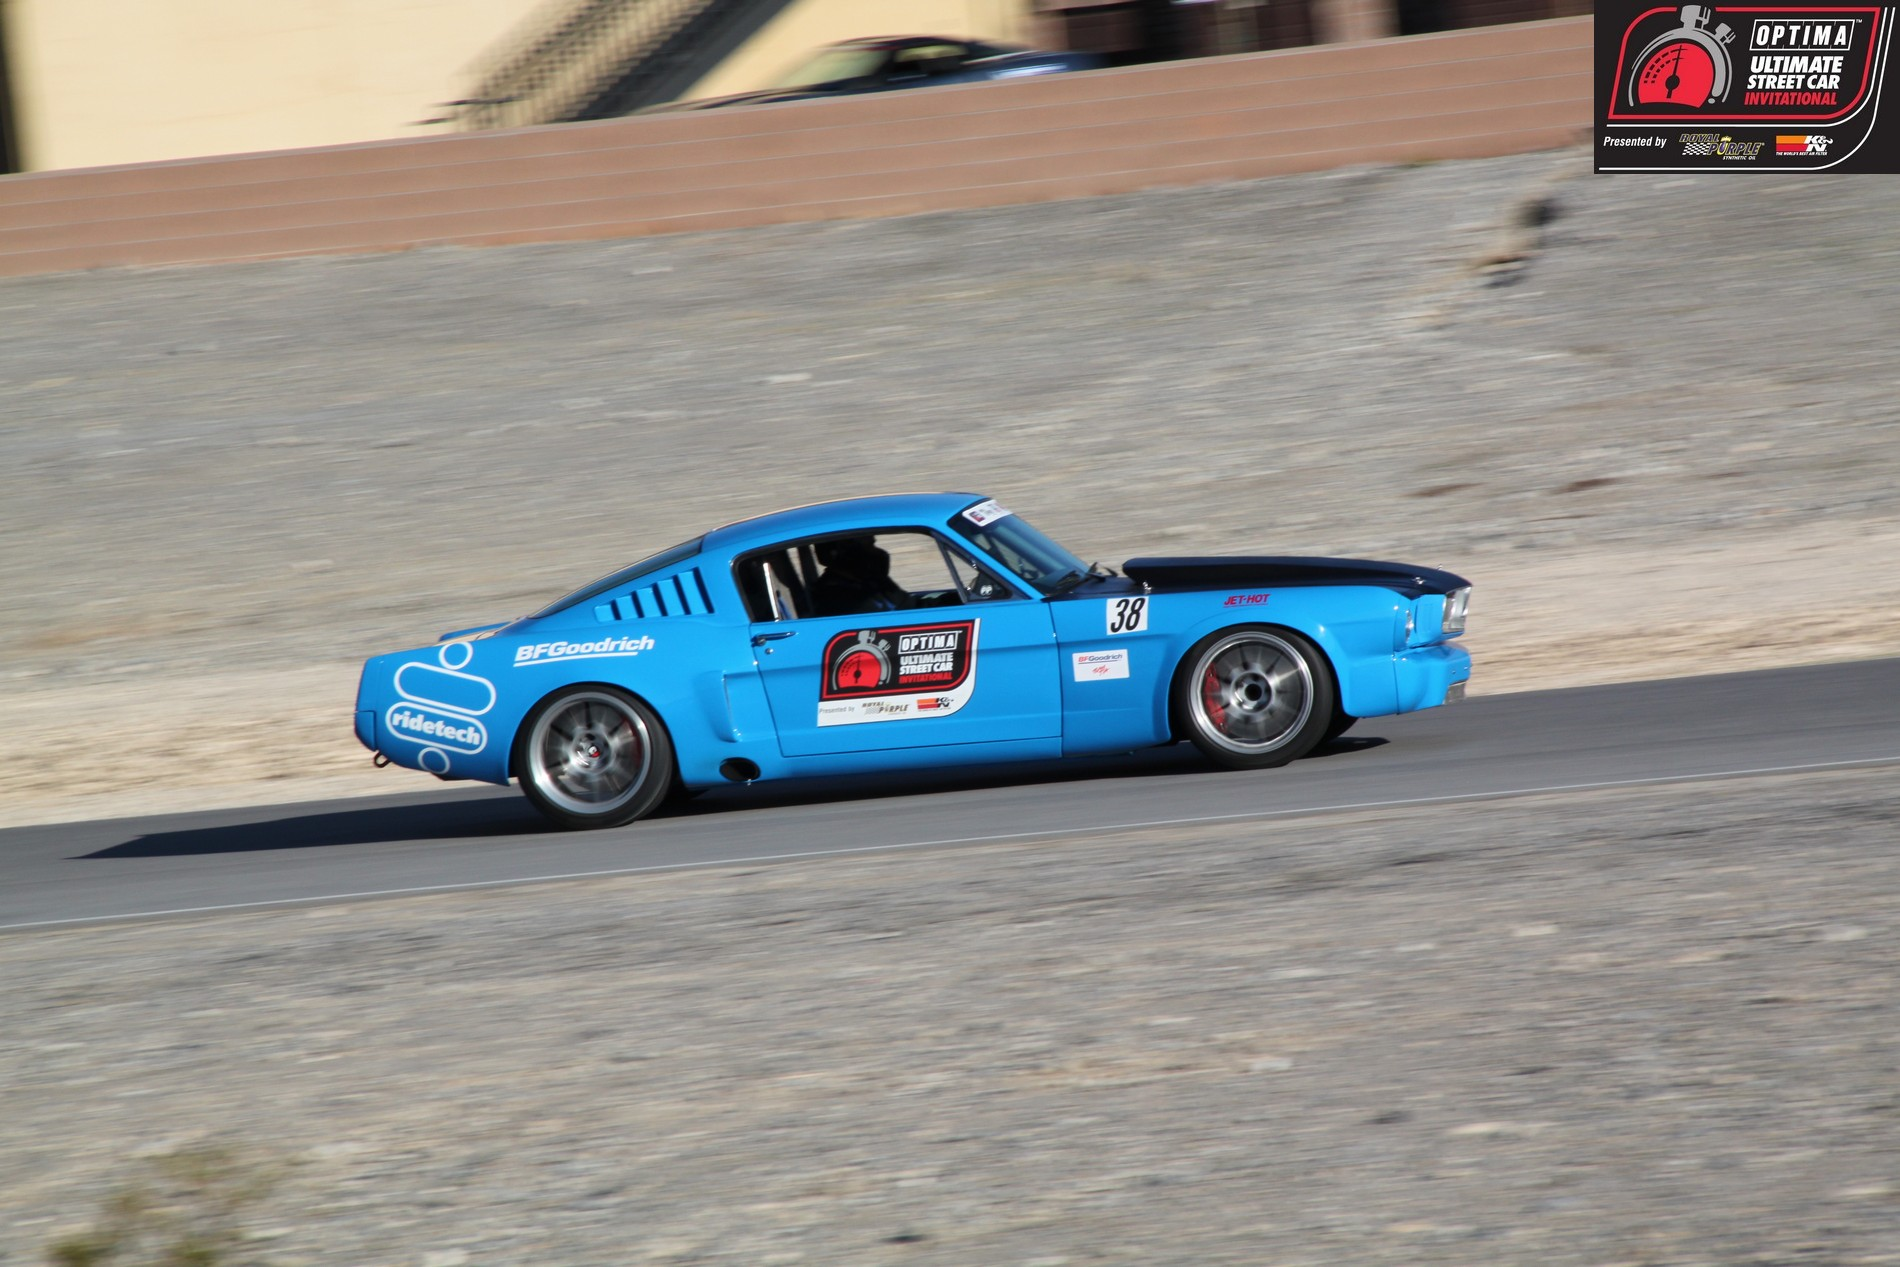 OUSCI Competitor Ron Schwarz & his 1966 Ford Mustang